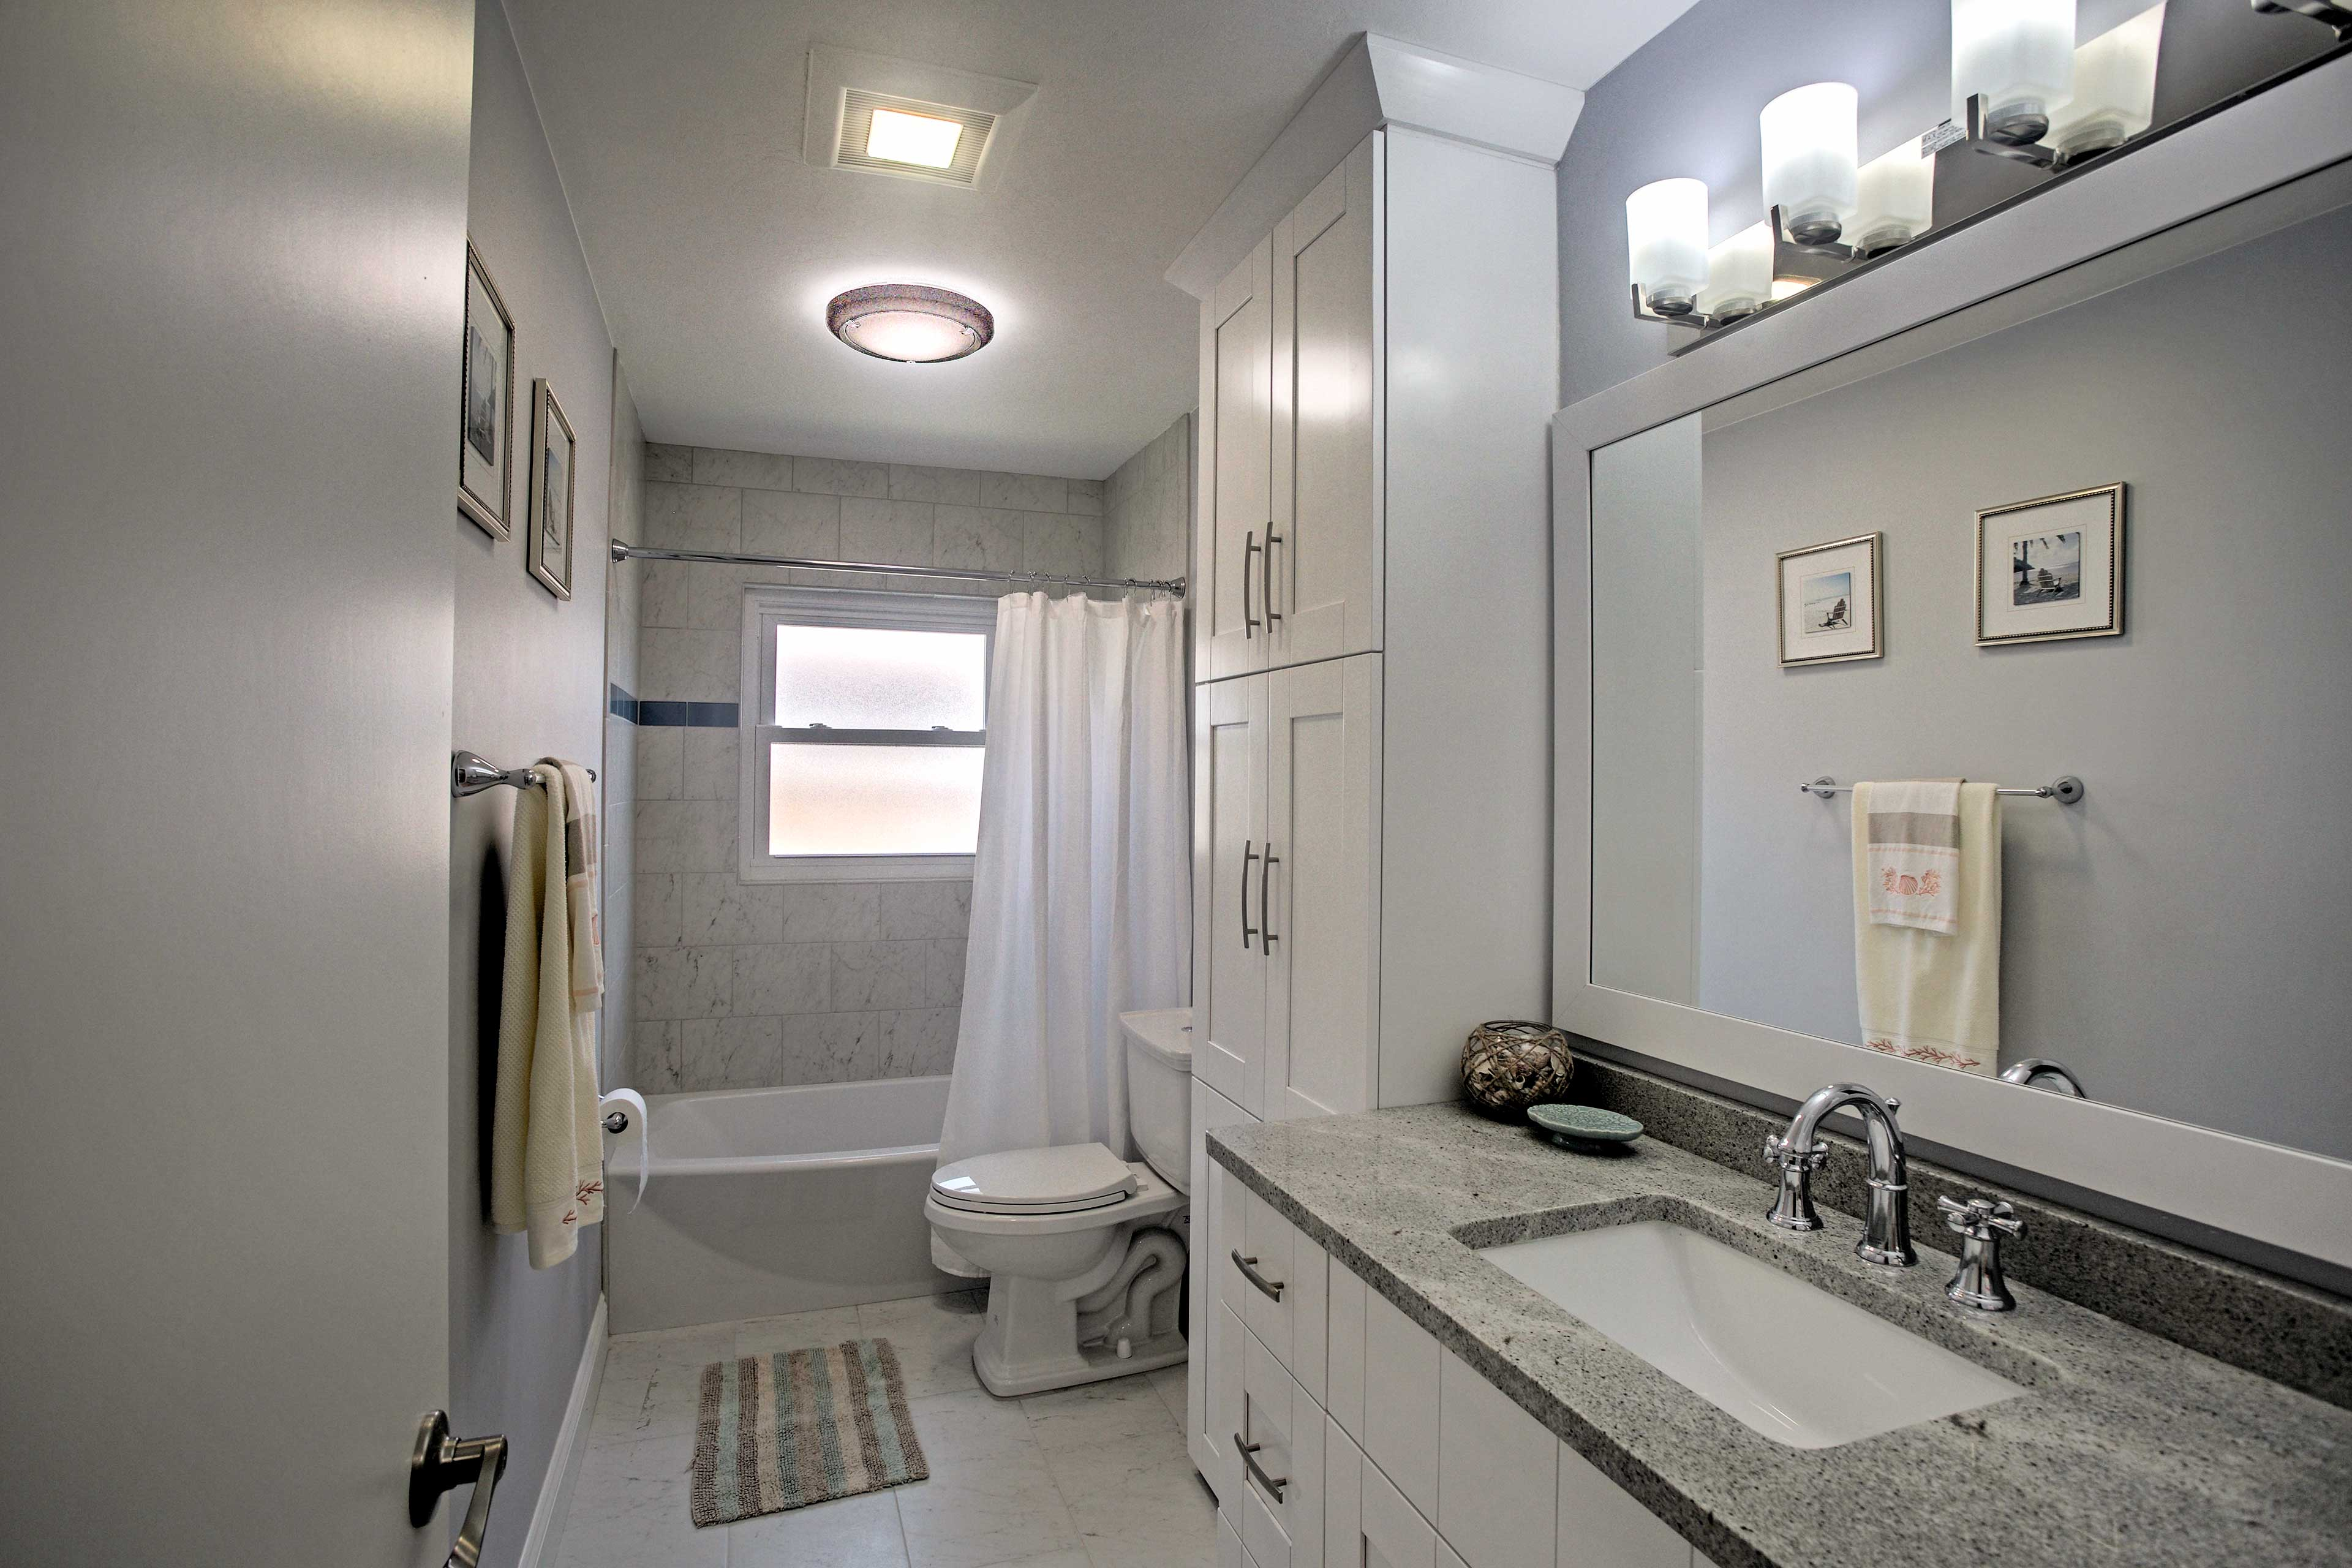 The second bathroom offers spacious accommodations to freshen up.